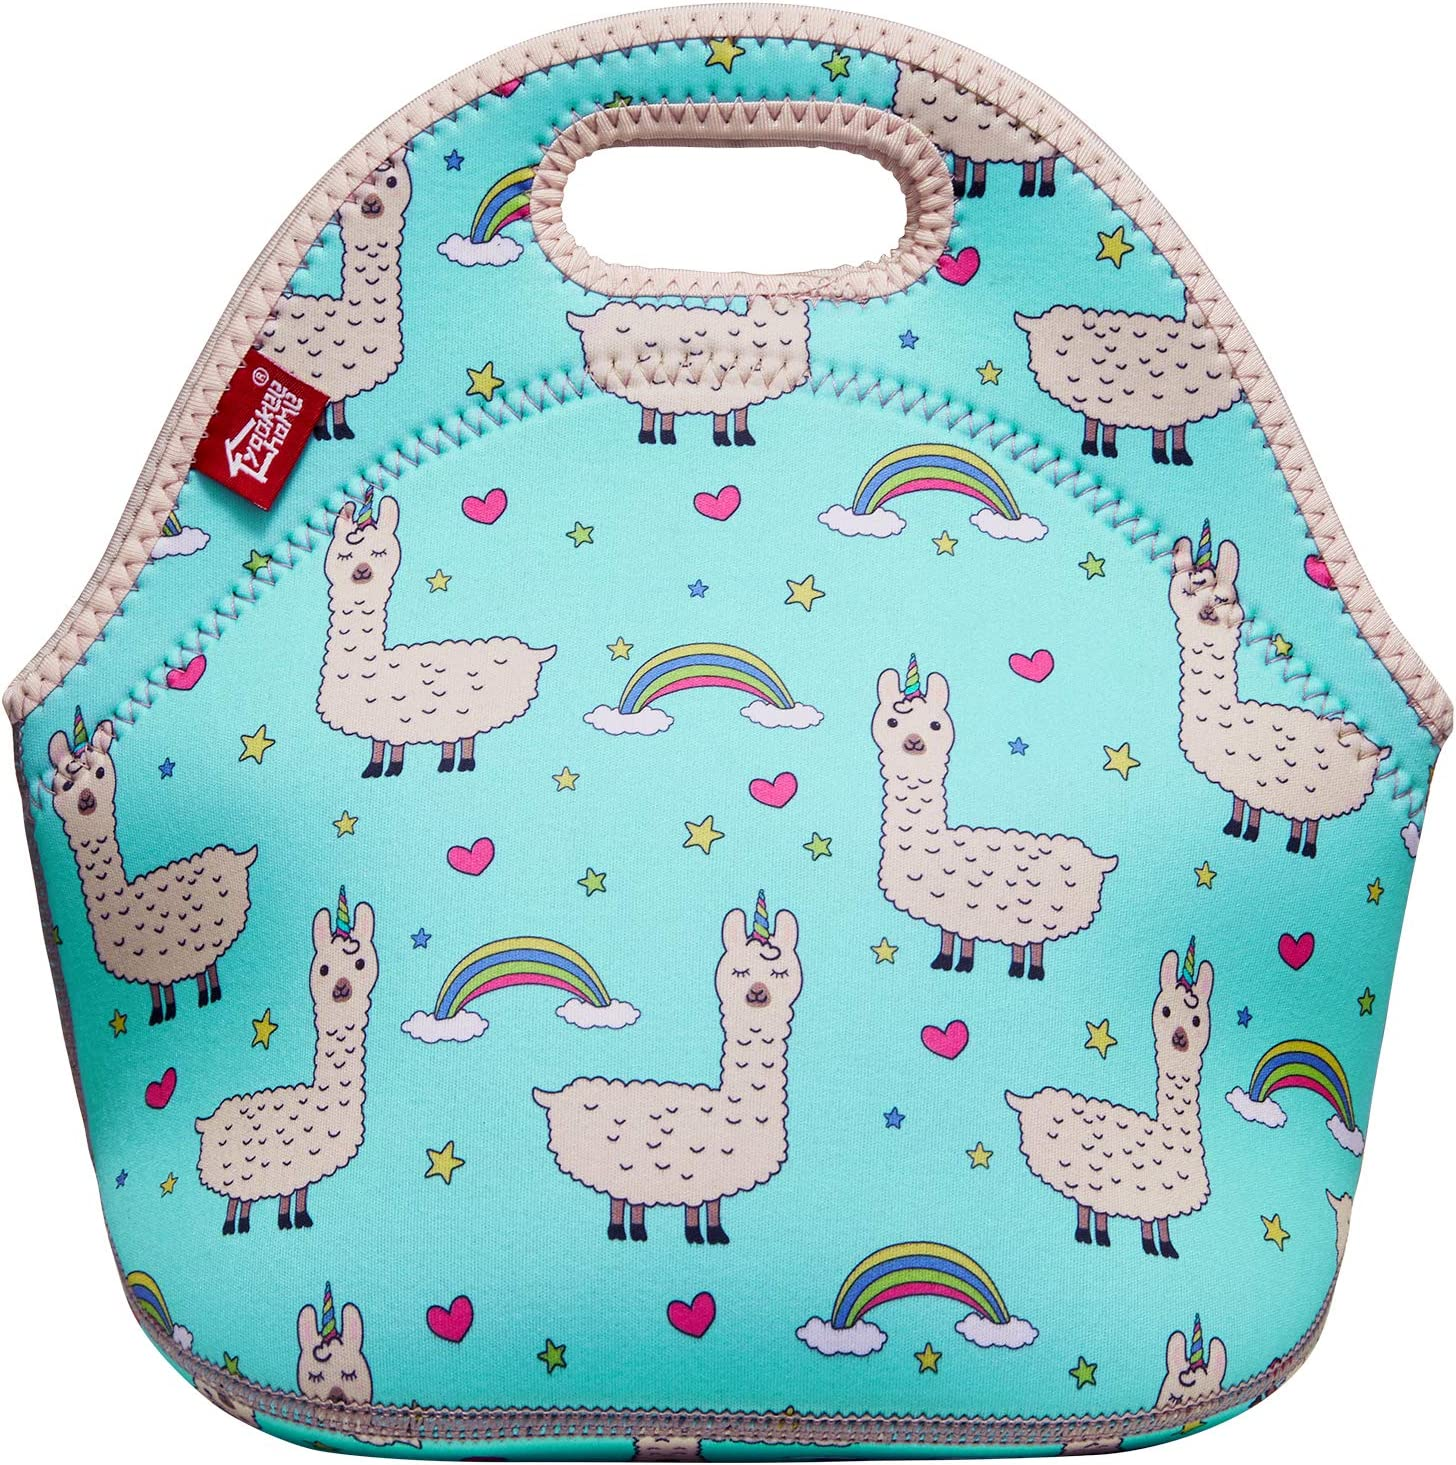 Cute Lunch Bags for Kids Thermal Neoprene Lunch Tote Bag for Girls Boys Soft LunchBox for Kindergarten Kids, Alpaca